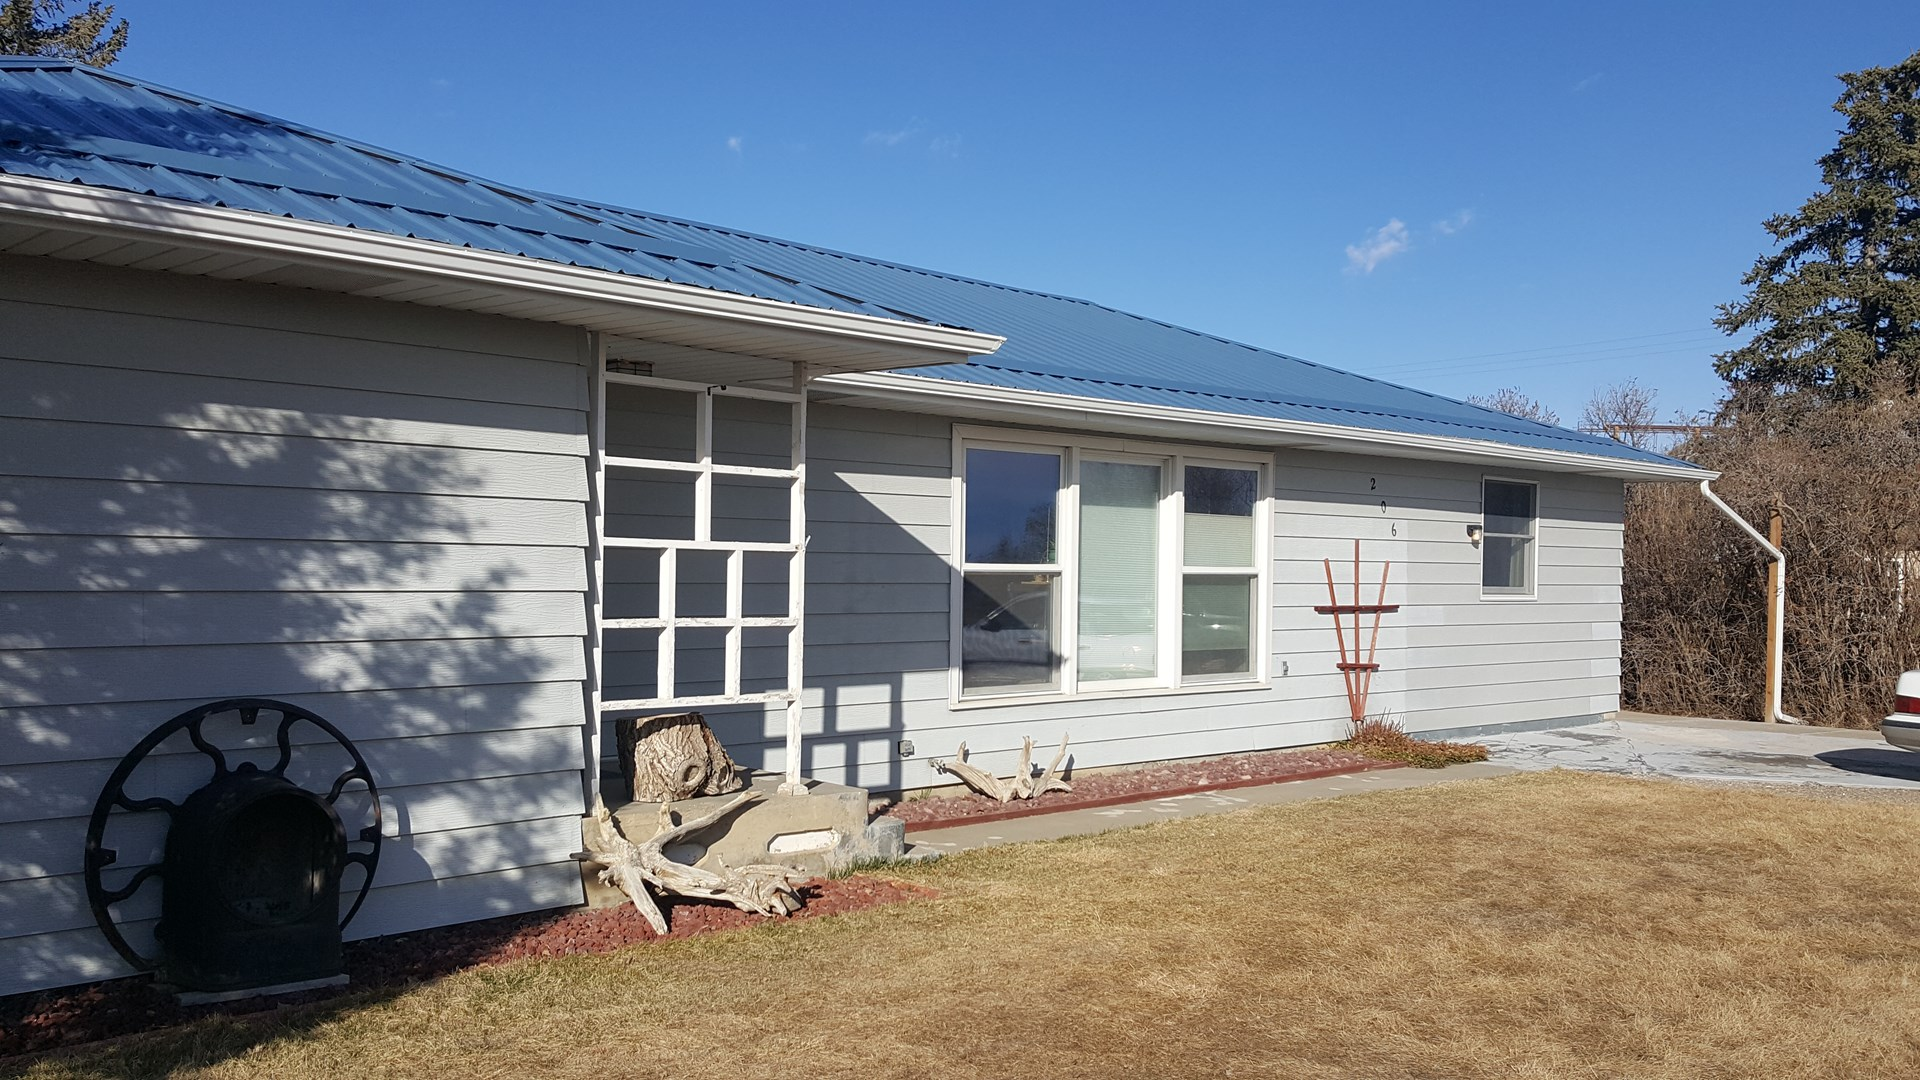 Small Town Living/4 bed/2 bath/Brady MT/$125,000